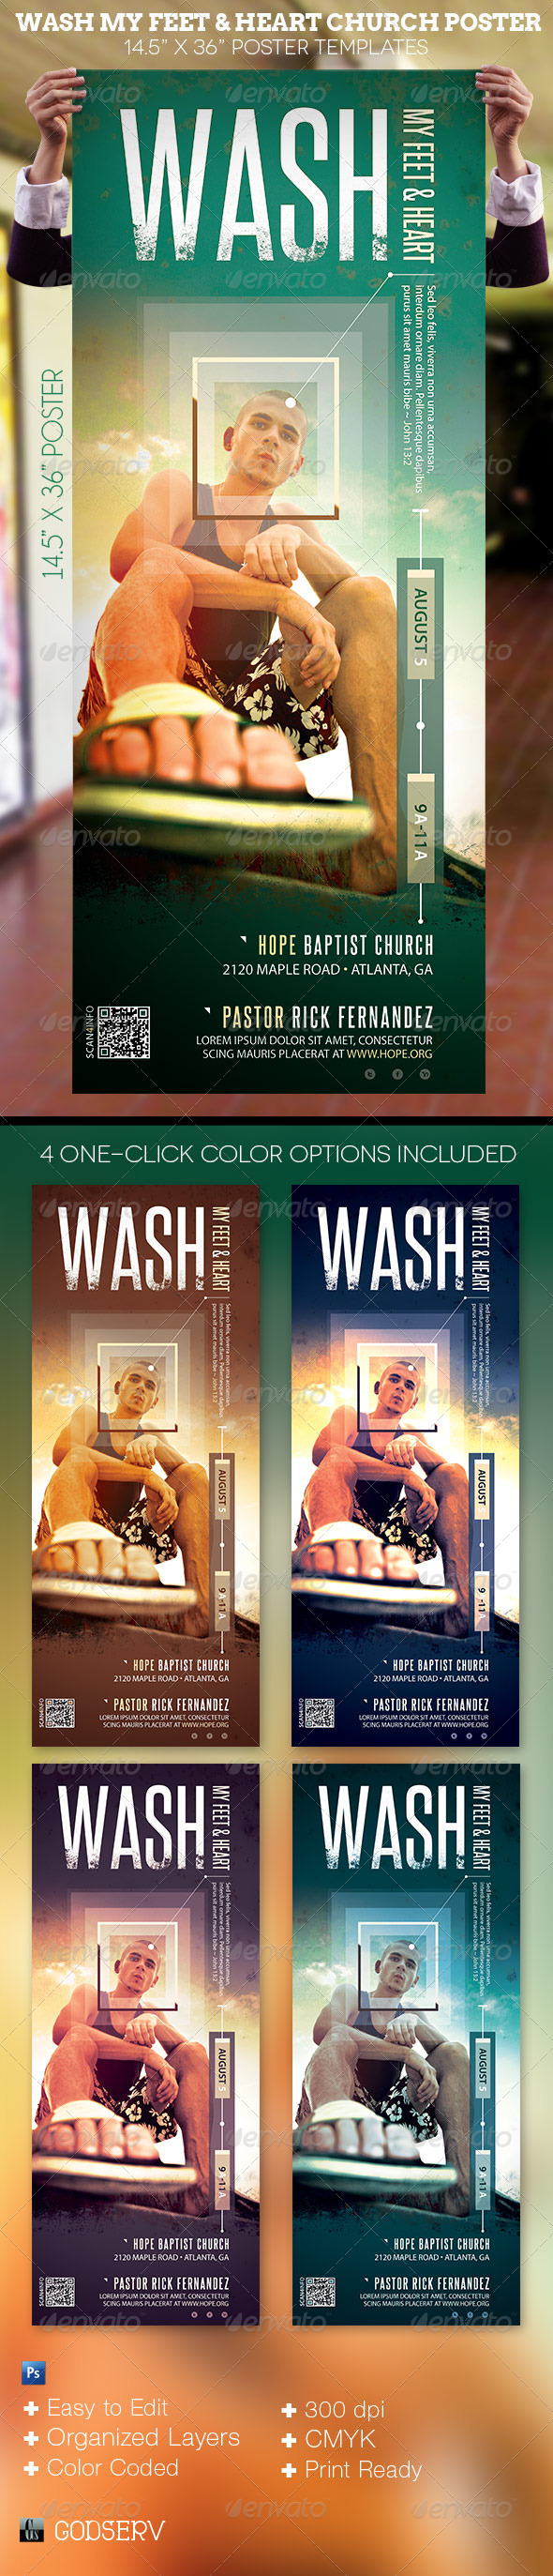 GraphicRiver Wash My Feet and Heart Church Poster Template 5714930